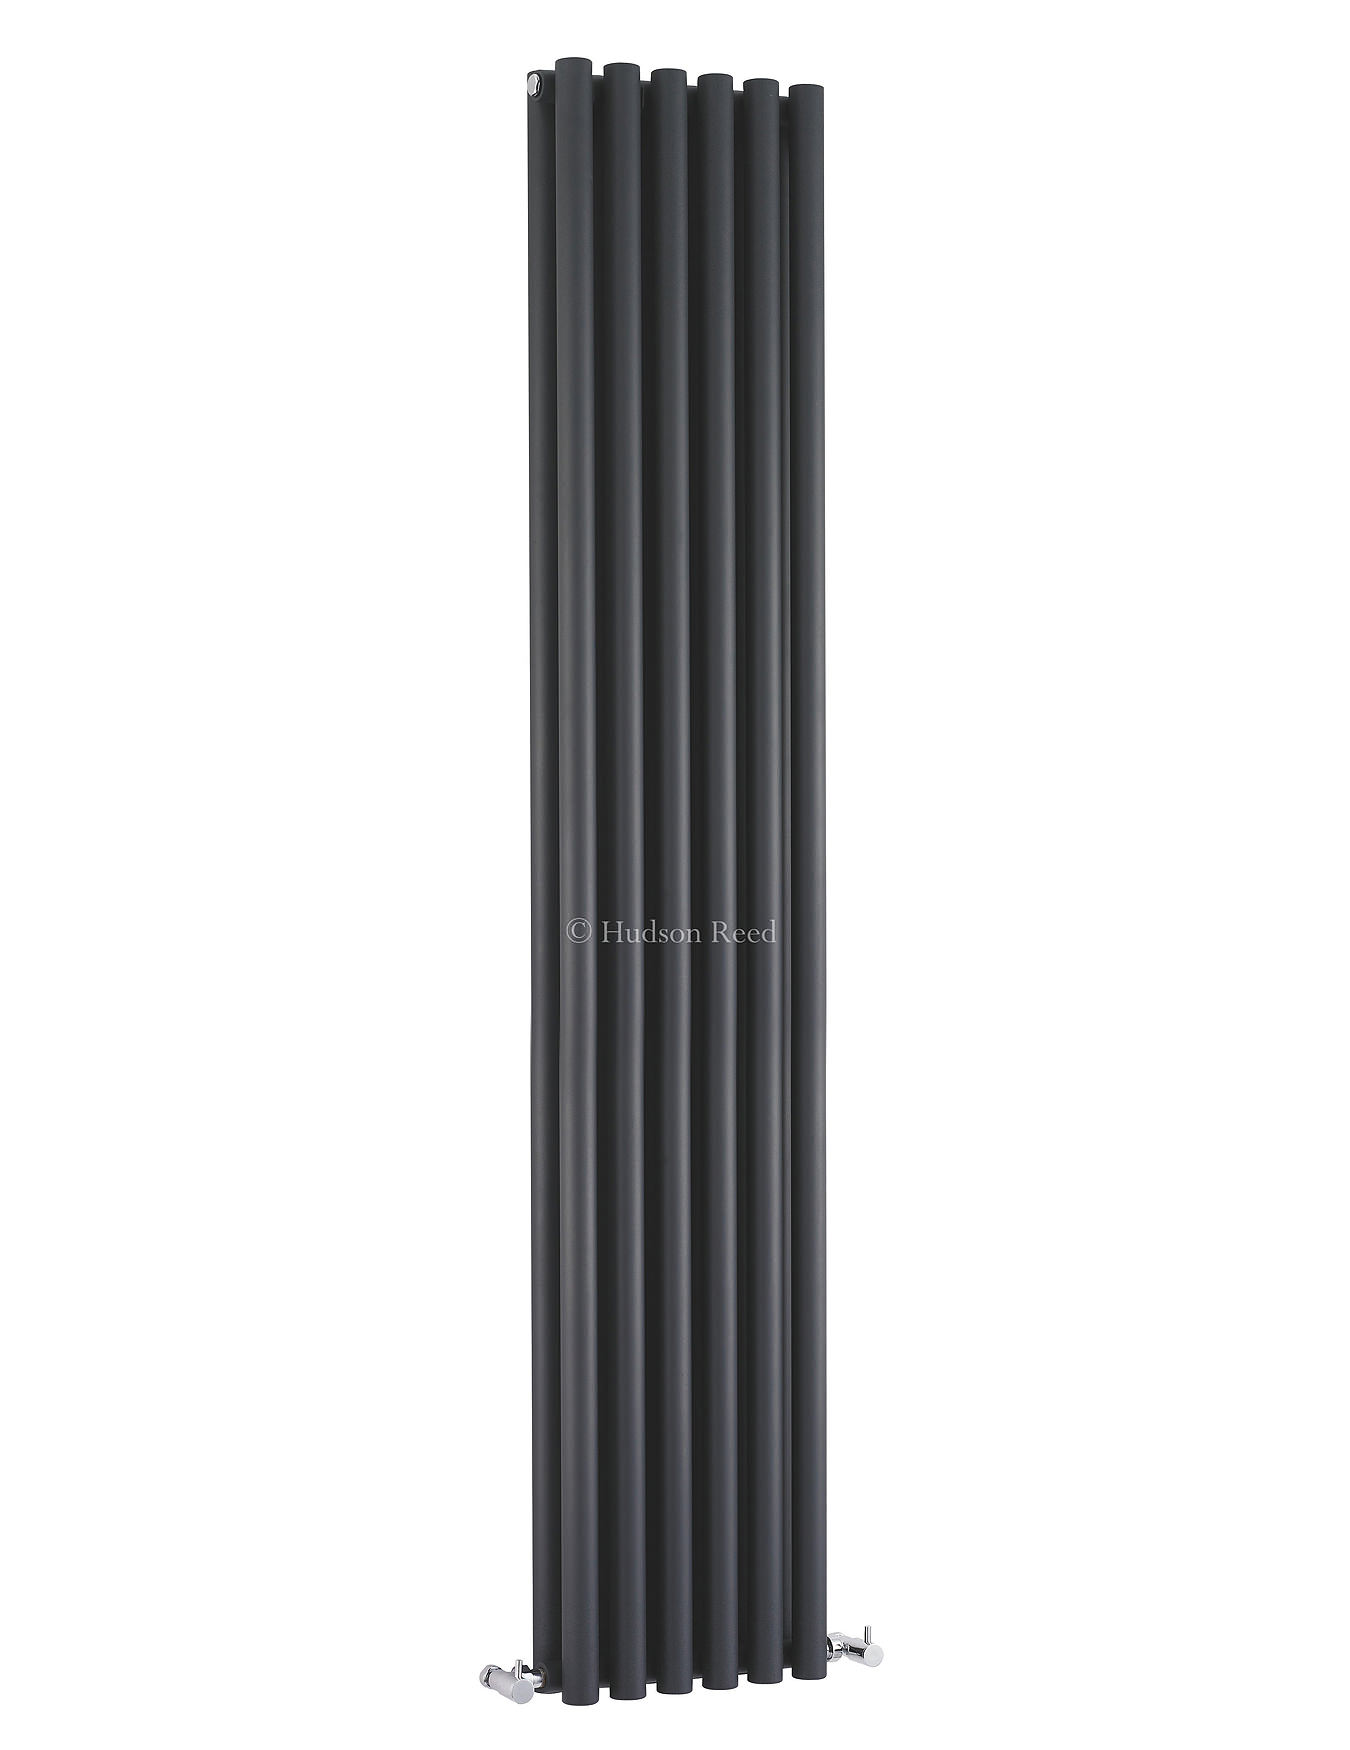 hudson reed savy double panel radiator 354x1800mm. Black Bedroom Furniture Sets. Home Design Ideas